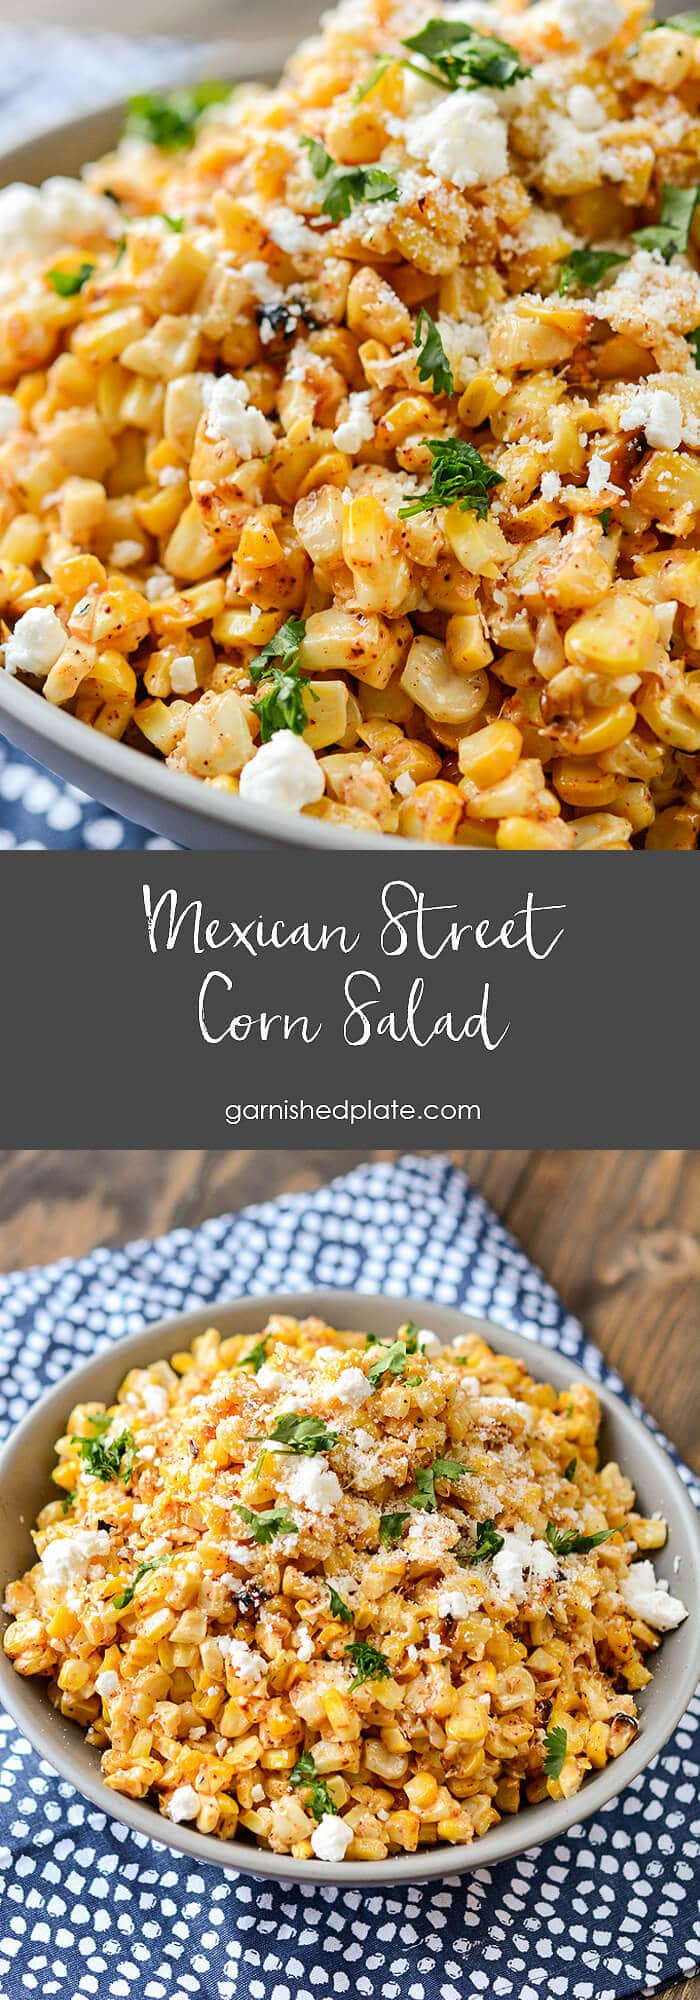 A delicious way to use up that end of summer corn, this Mexican Street Corn salad is perfect on it's own or amazing as a topping on your favorite tacos.